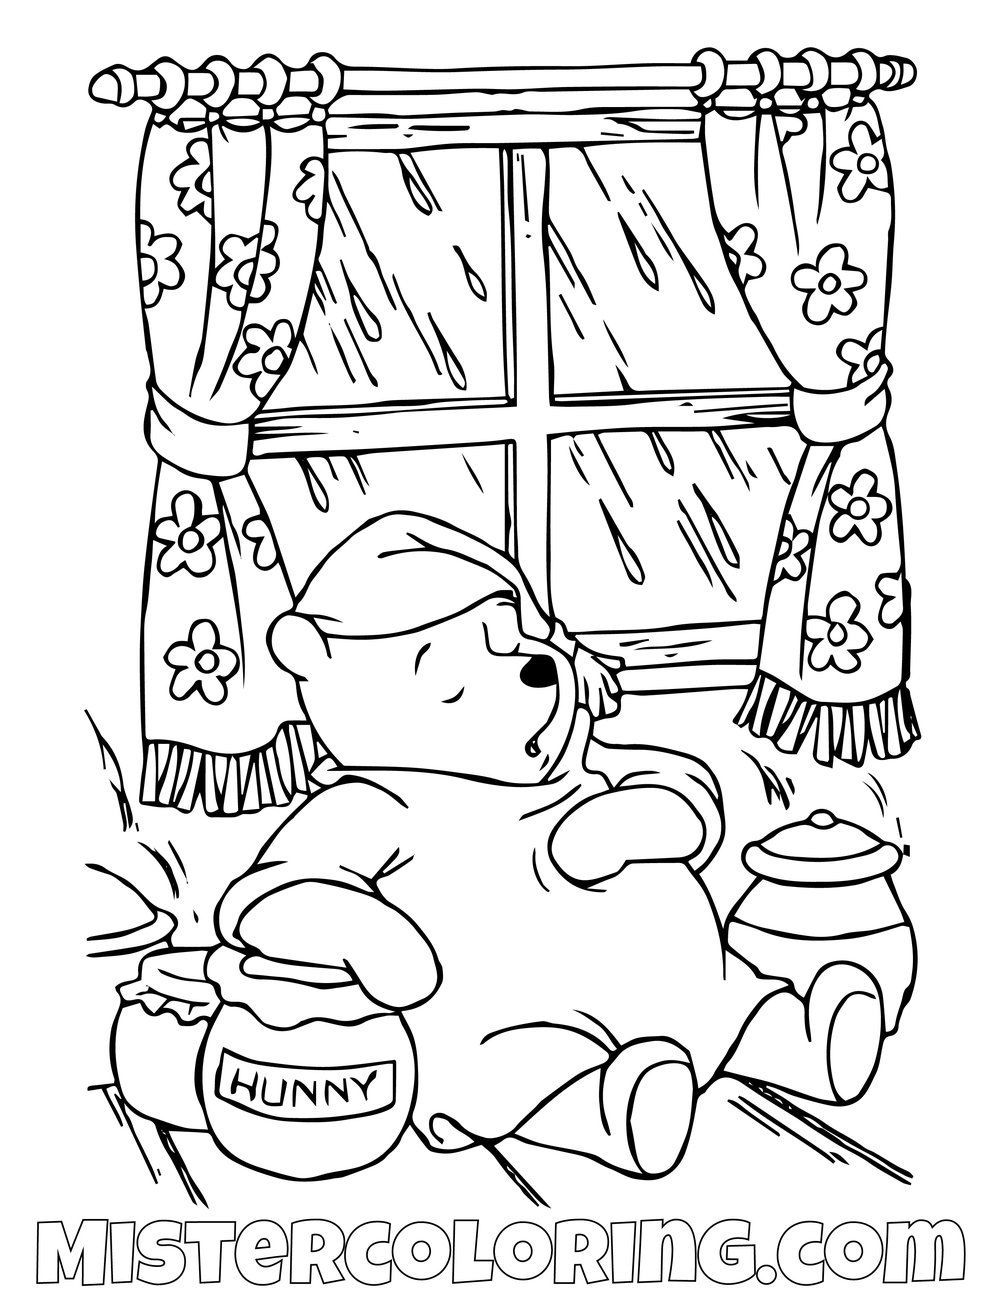 Winnie The Pooh Sleeping Inside Coloring Page Coloring Pages Coloring Pages For Kids Winnie The Pooh